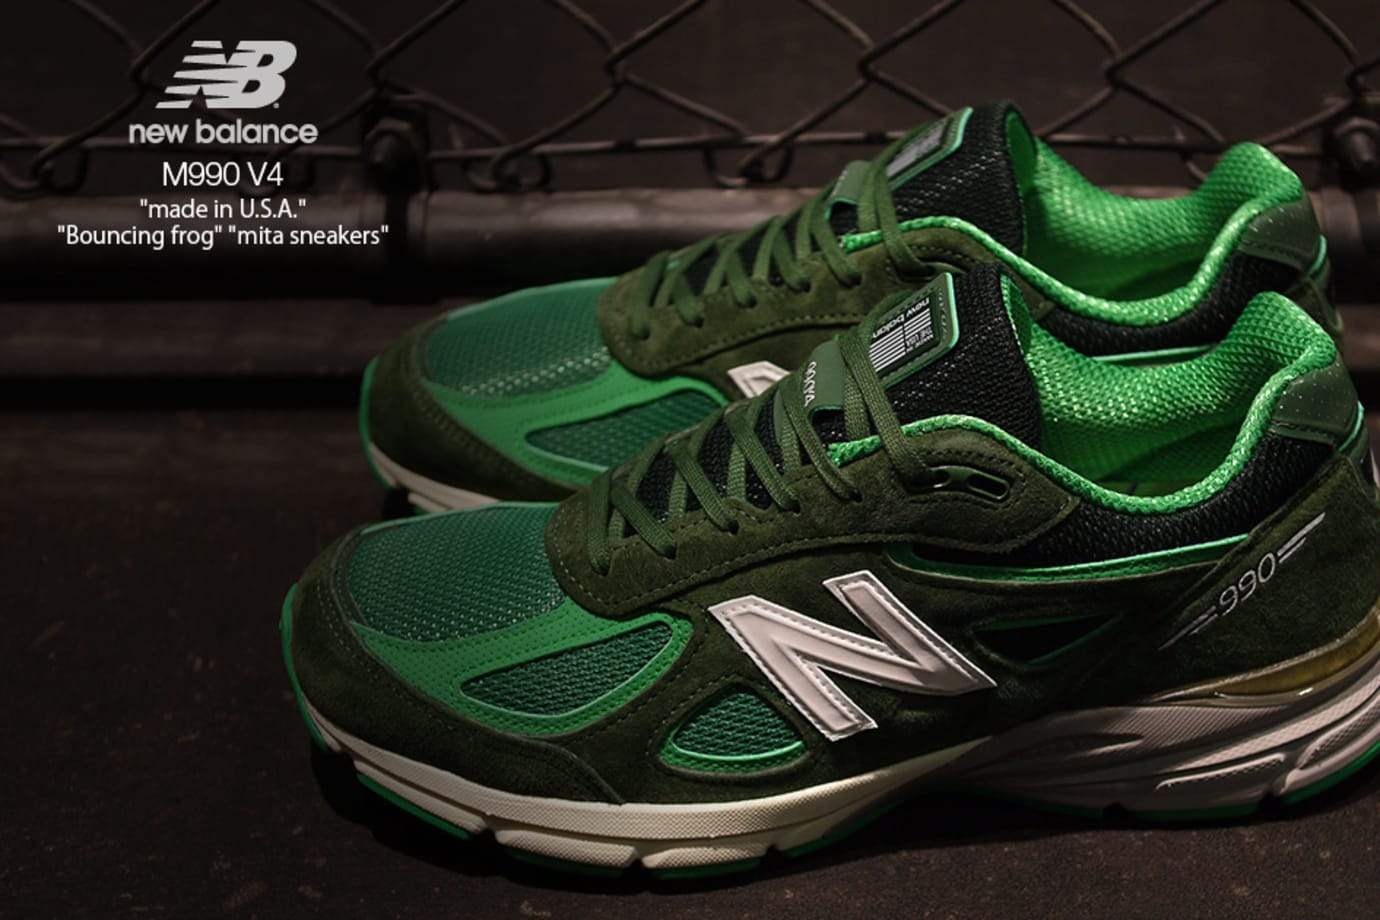 competitive price 453ff 46e69 Mita Sneakers x New Balance 990 v4 'Bouncing Frog' Release ...